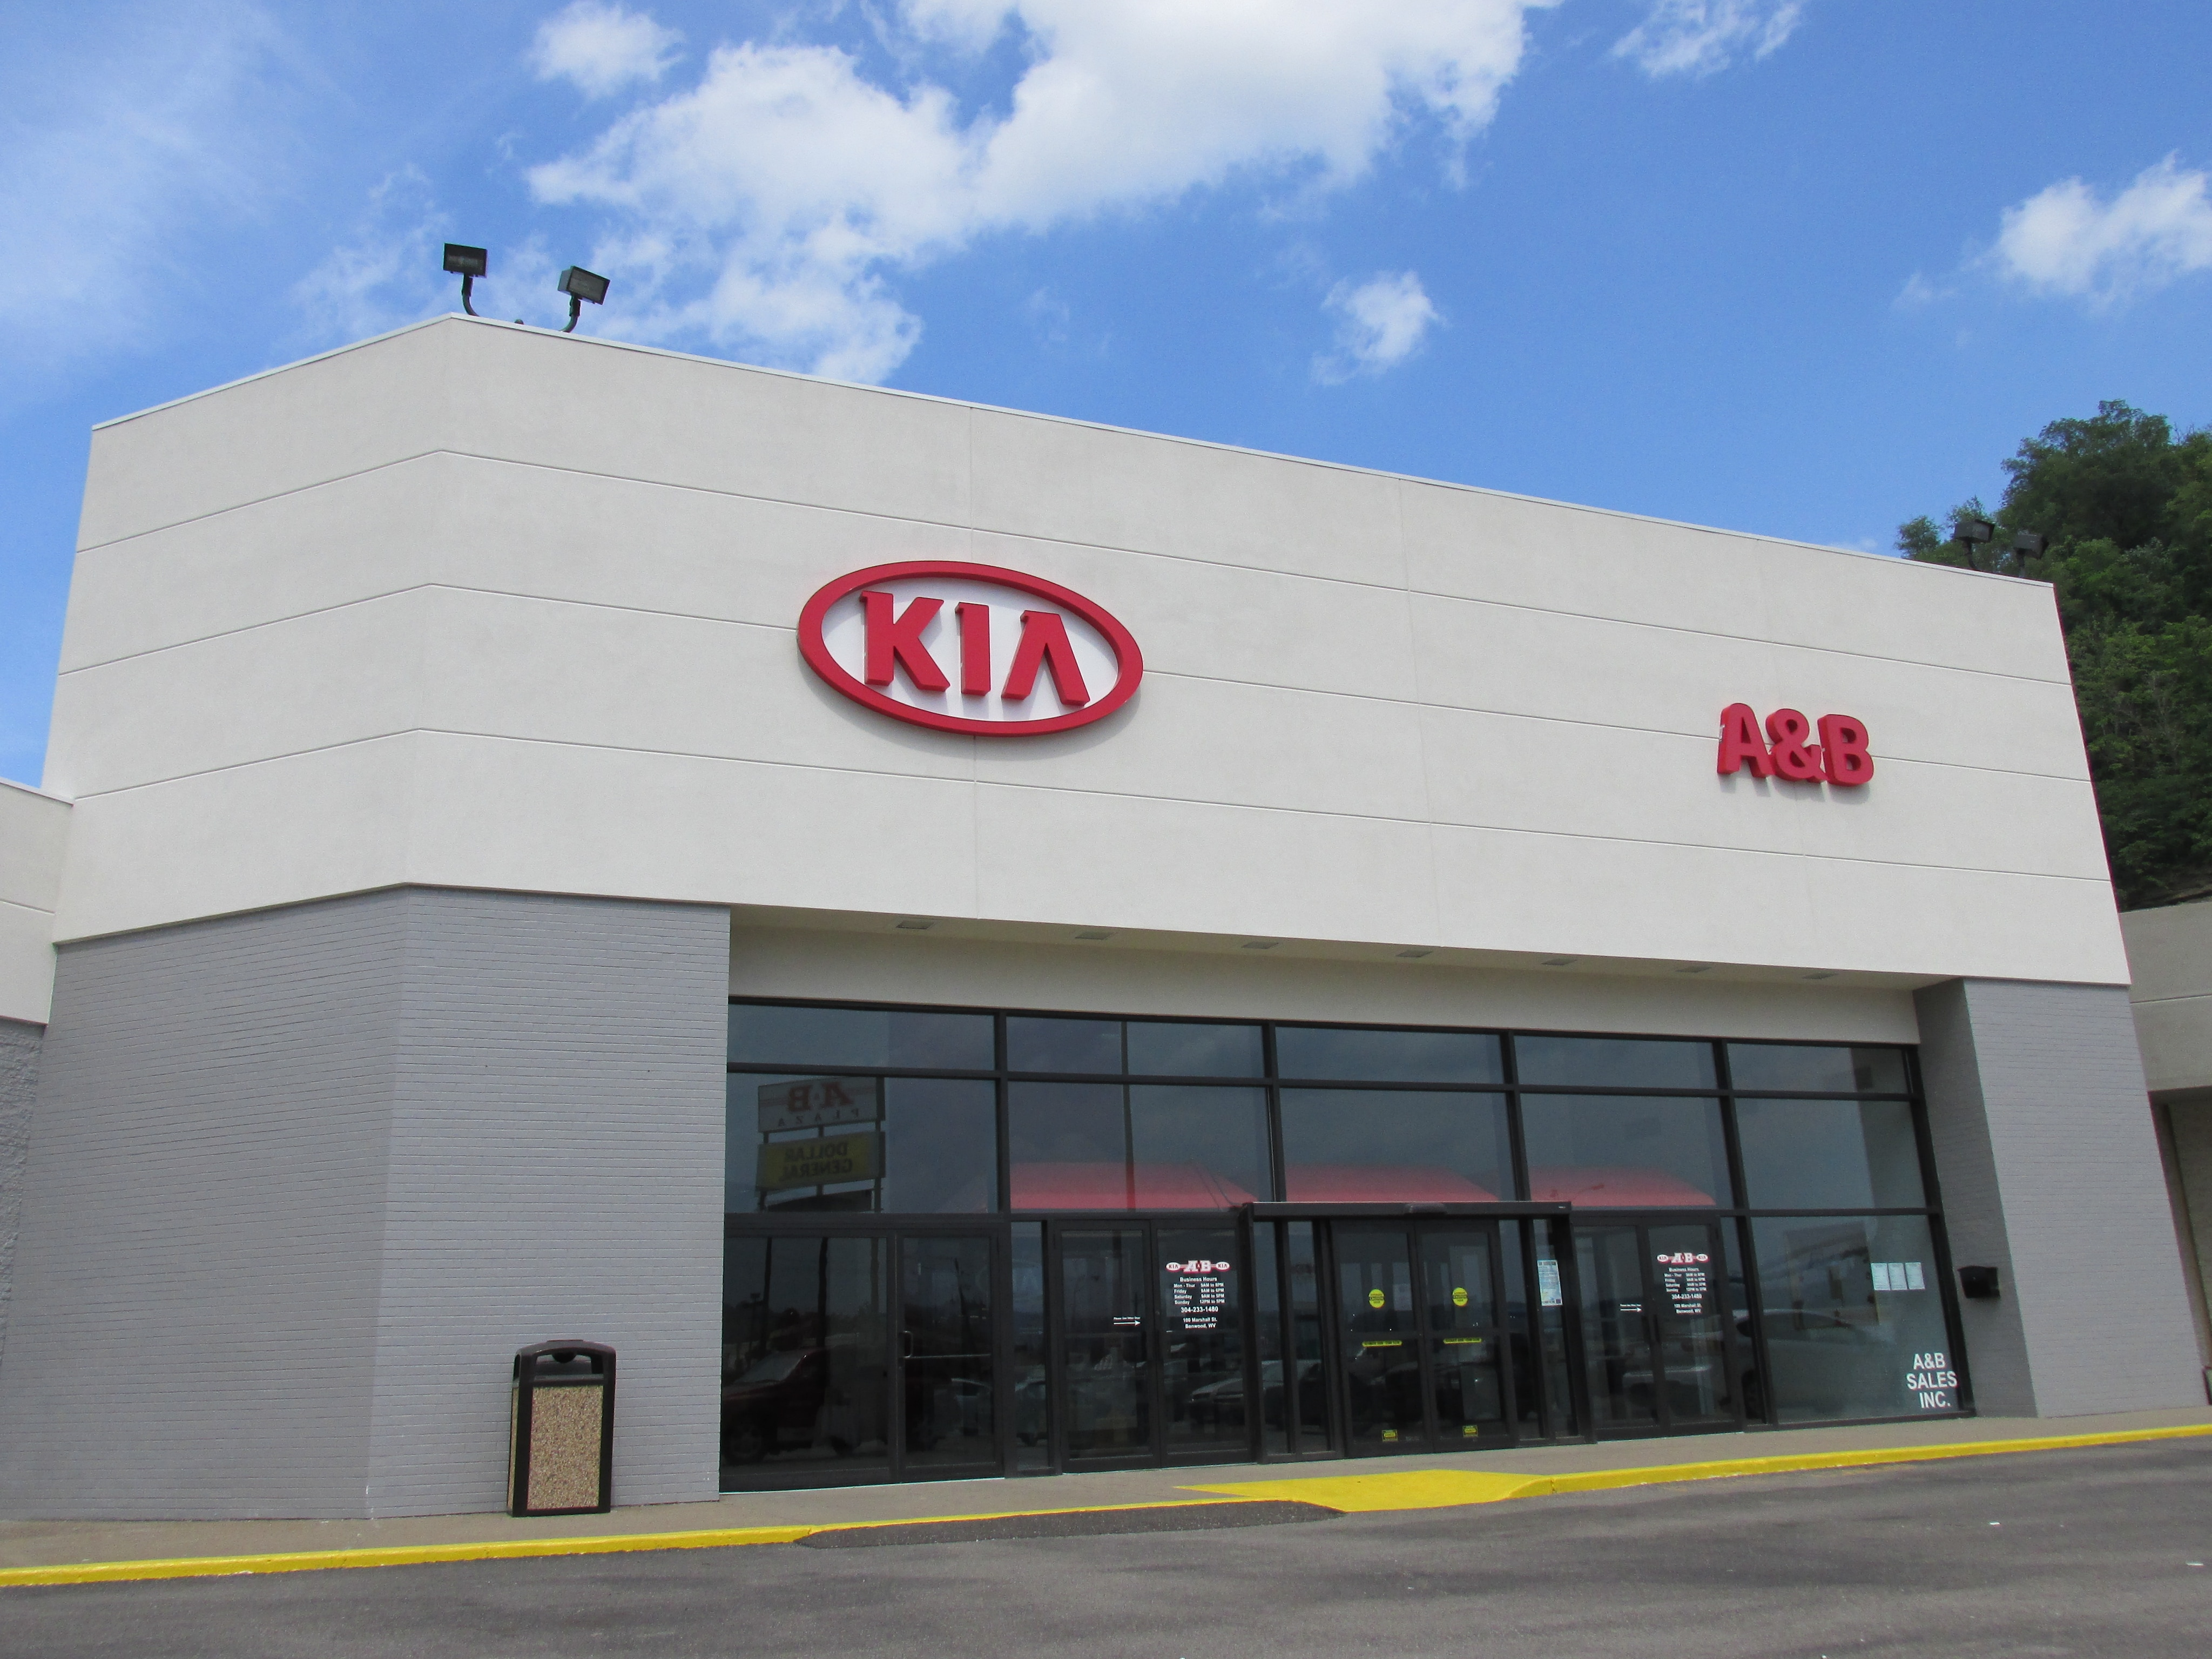 A U0026 B Kia Is A Family Owned, Full Service Dealership That Has Been Serving  The Ohio Valley Since 1992.